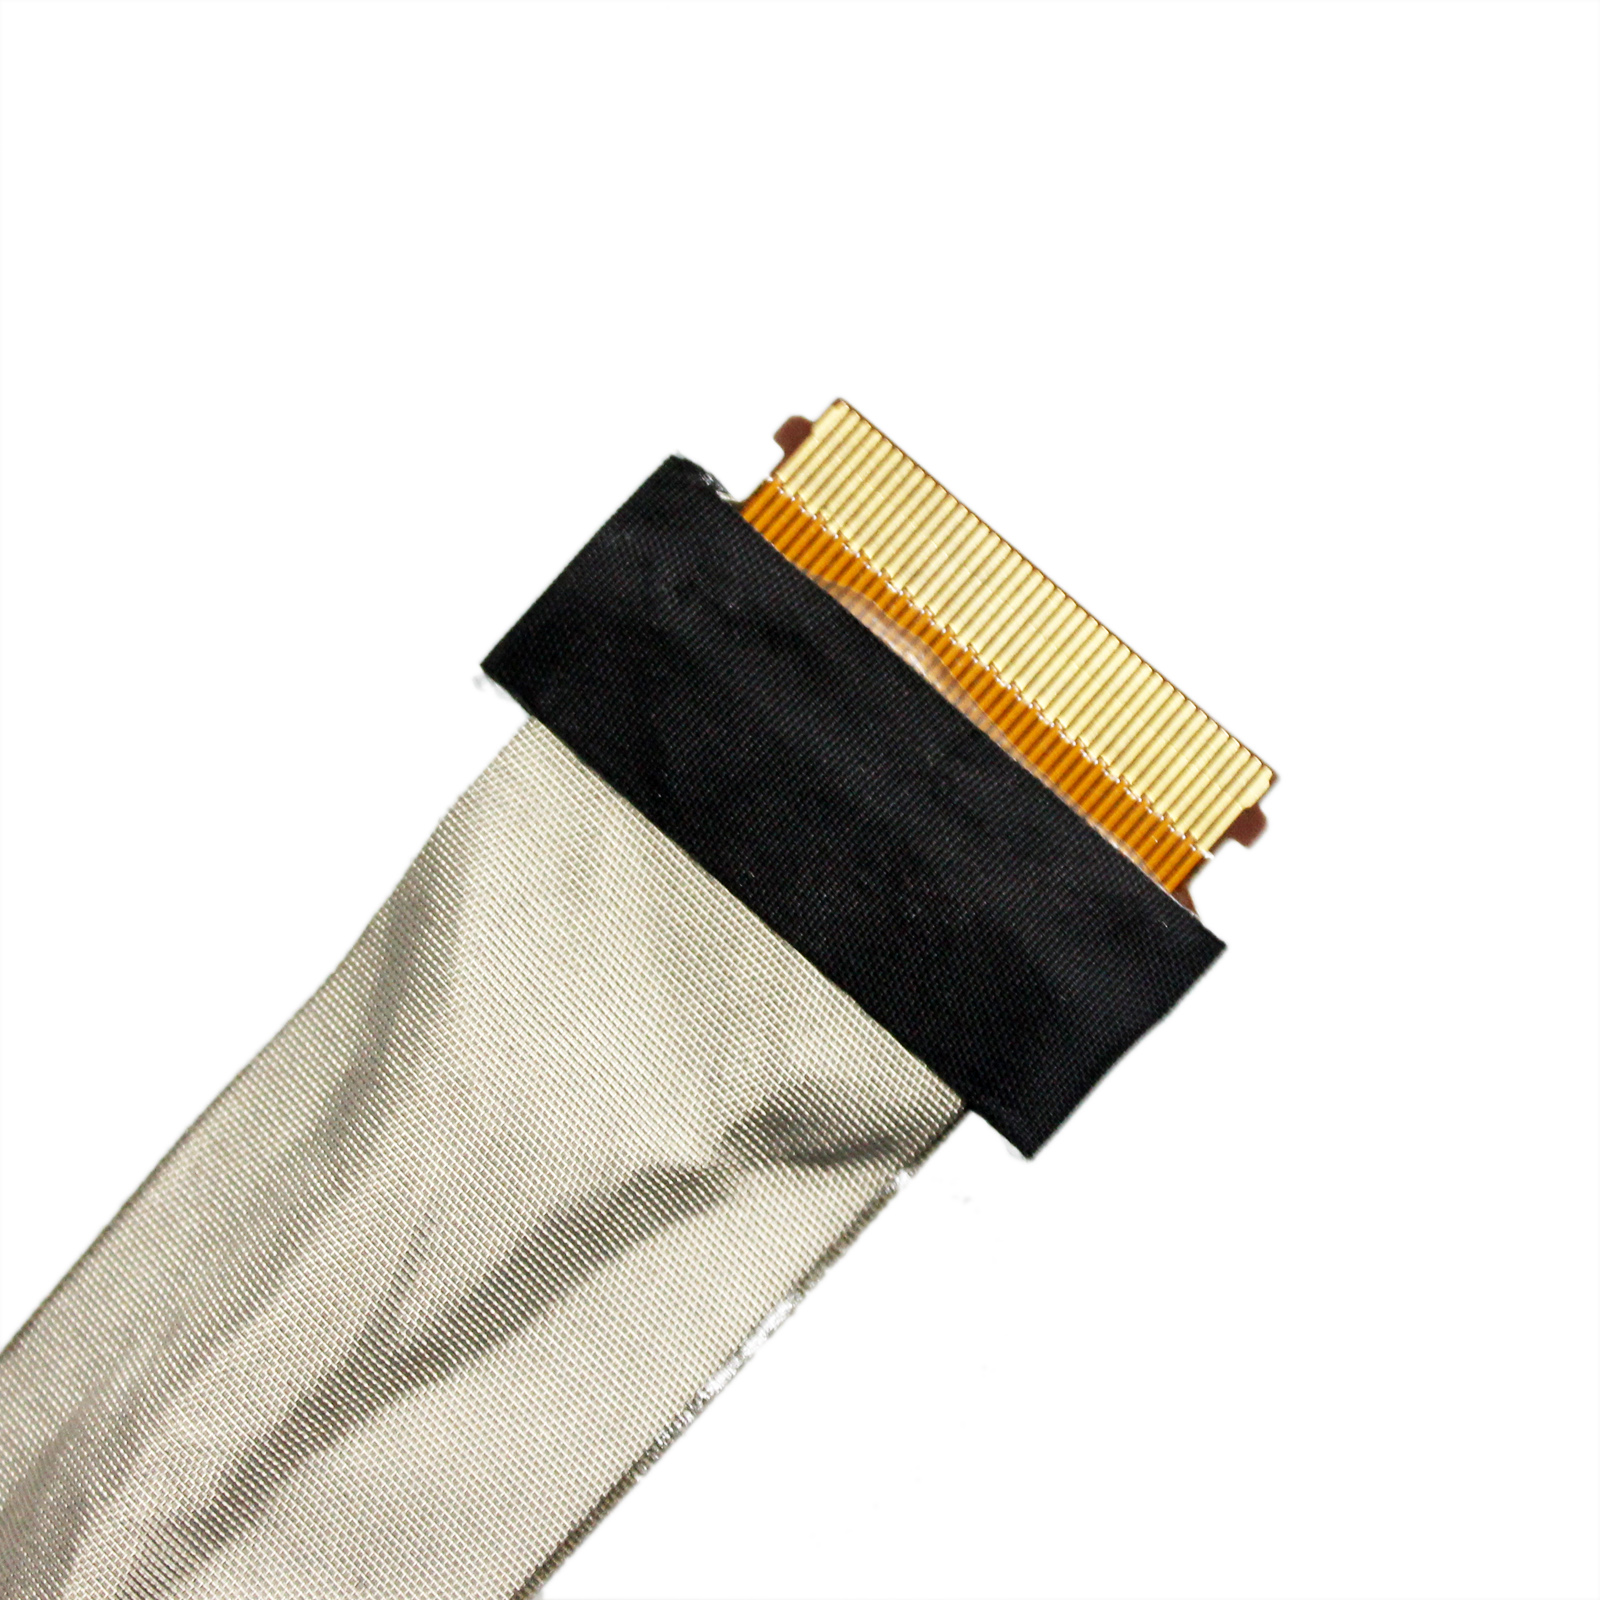 LCD LED LVDS VIDEO SCREEN CABLE FOR Toshiba C75-A7390 C75D-A7213 C75D-A7370